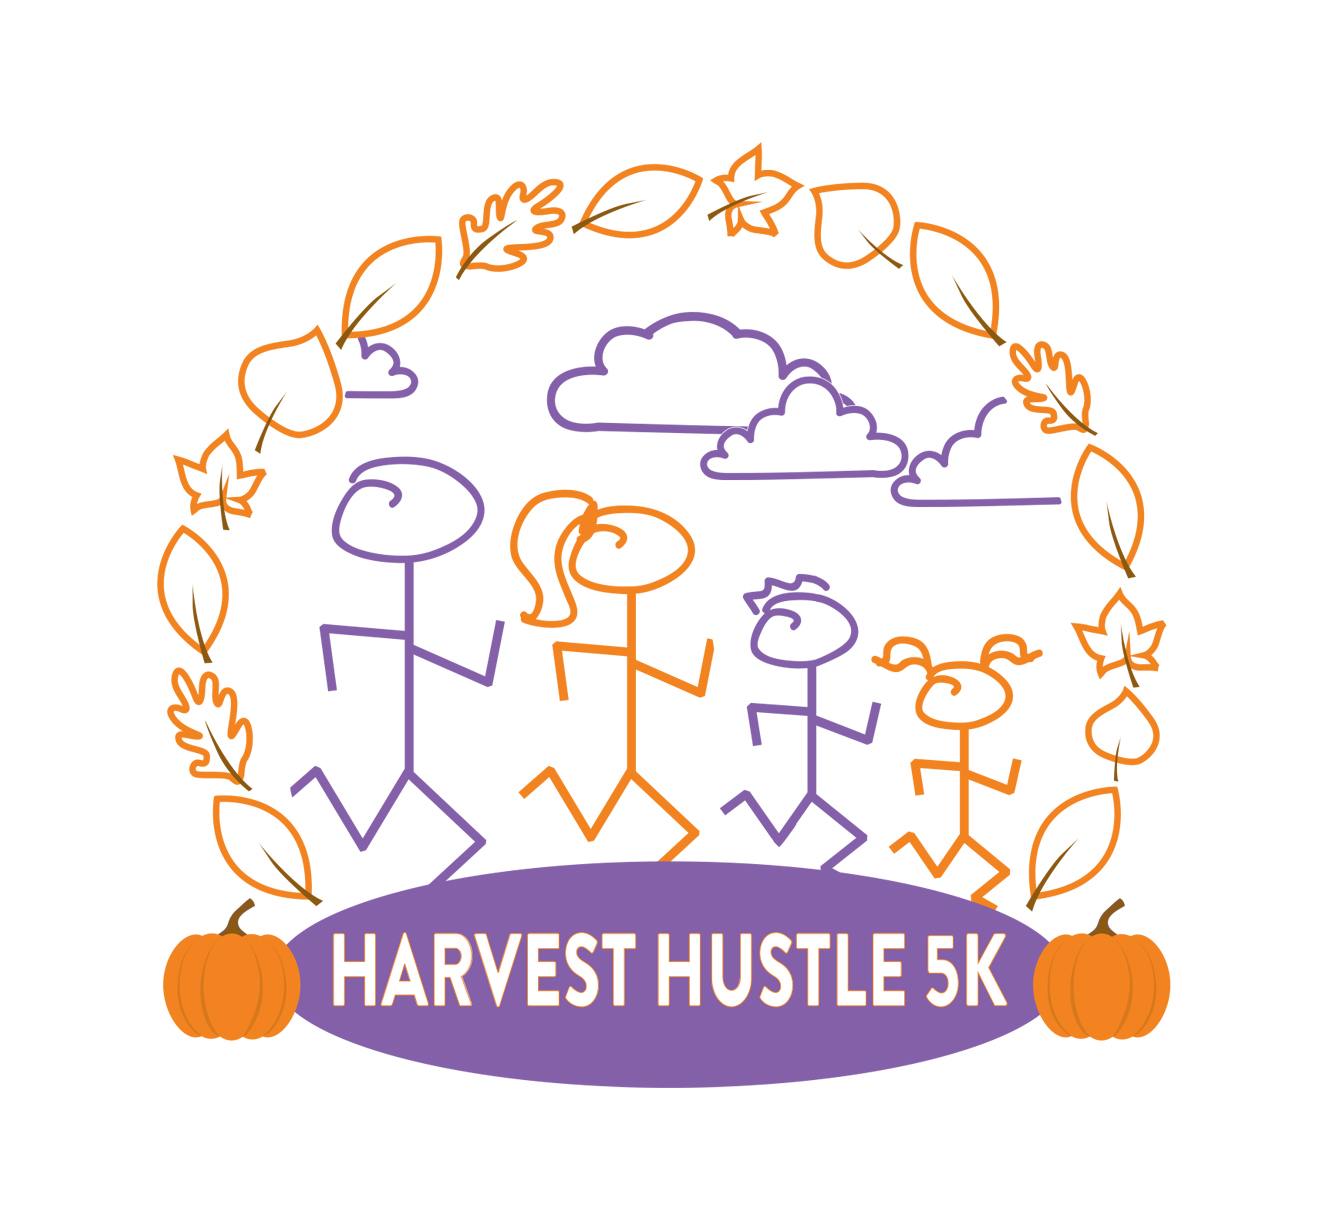 Harvest Hustle 5k logo